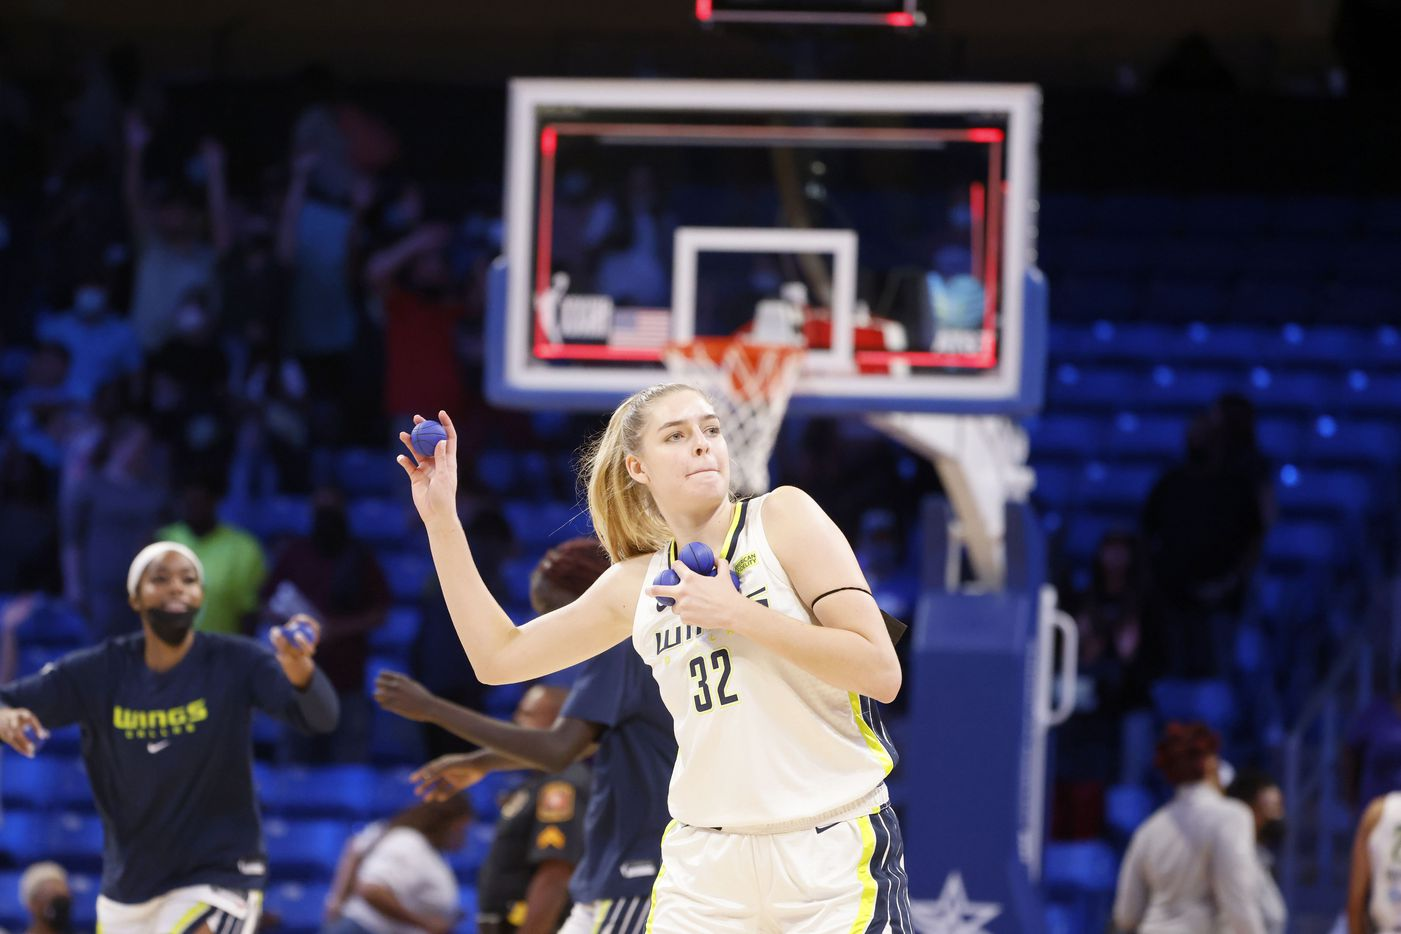 Dallas Wings center/forward Bella Alarie (32) throws ball to fans after they defeated the Los Angeles Sparks 87-84 during a WNBA basketball game in Arlington, Texas on Sunday, Sept. 19, 2021. (Michael Ainsworth/Special Contributor)